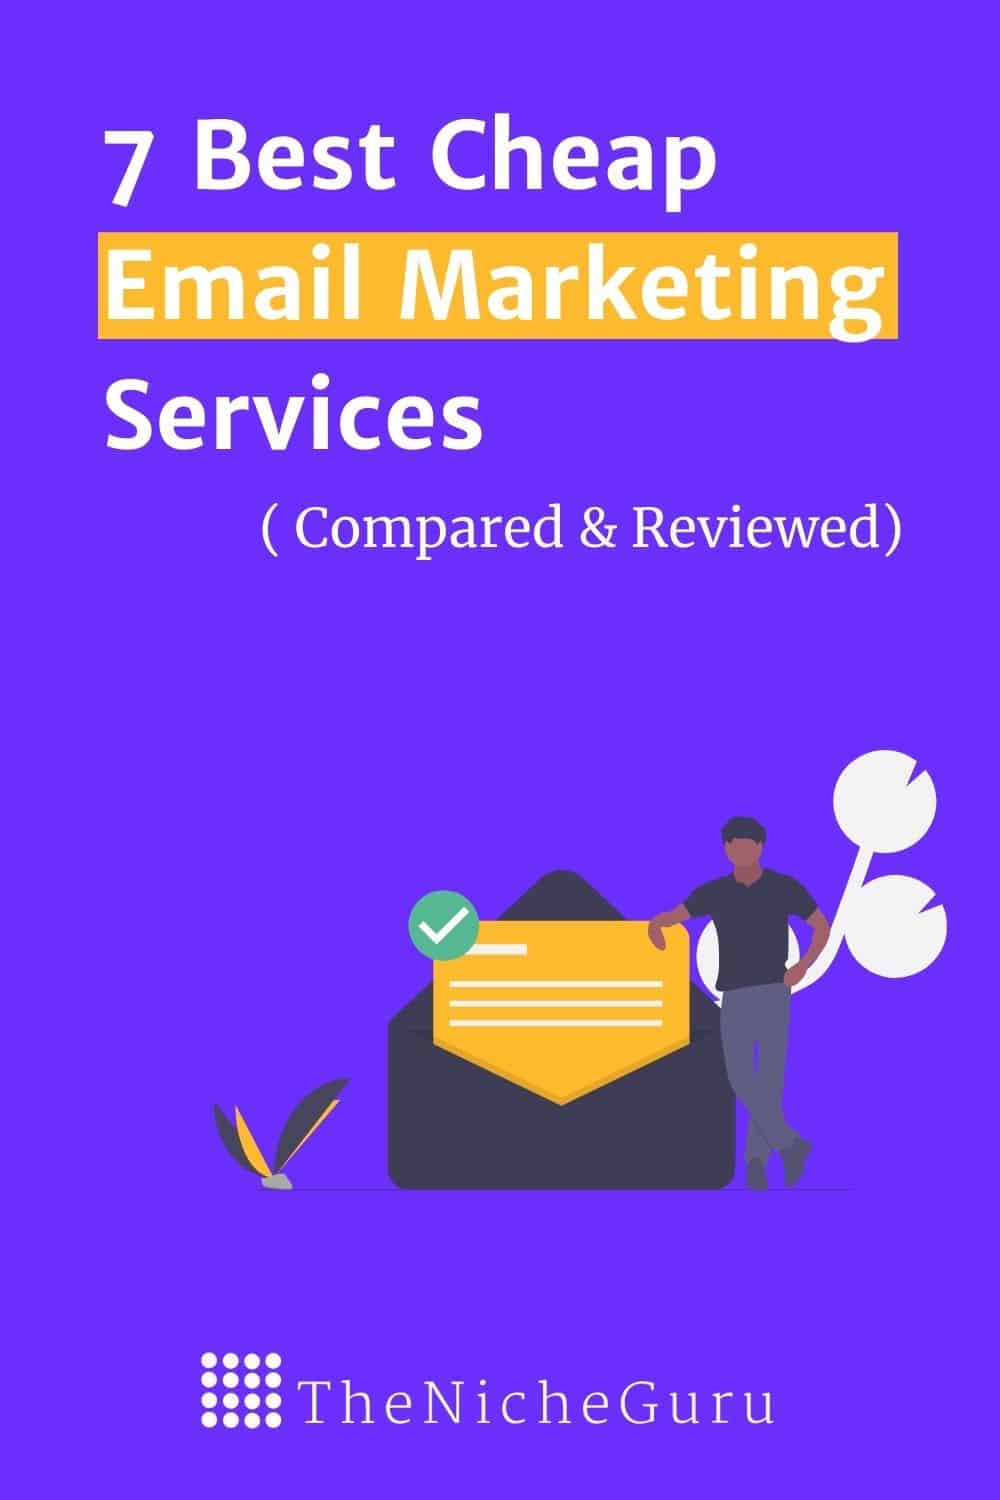 7 Best email marketing services for your business. Free software perfect for beginners and for ecommerce businesses. #EmailMarketing #Email #BloggingTools #FreeEmail